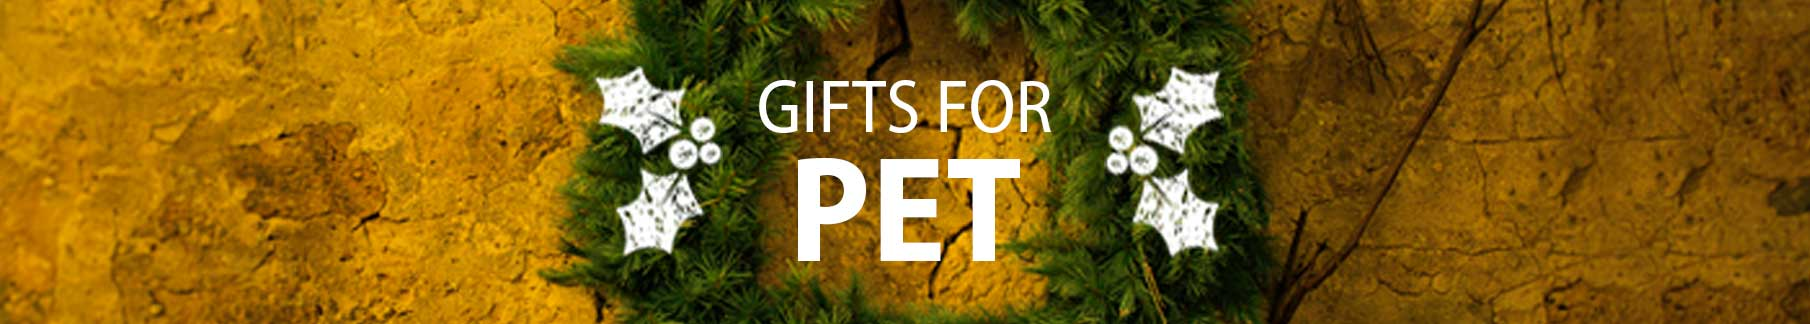 Gifts for Pet